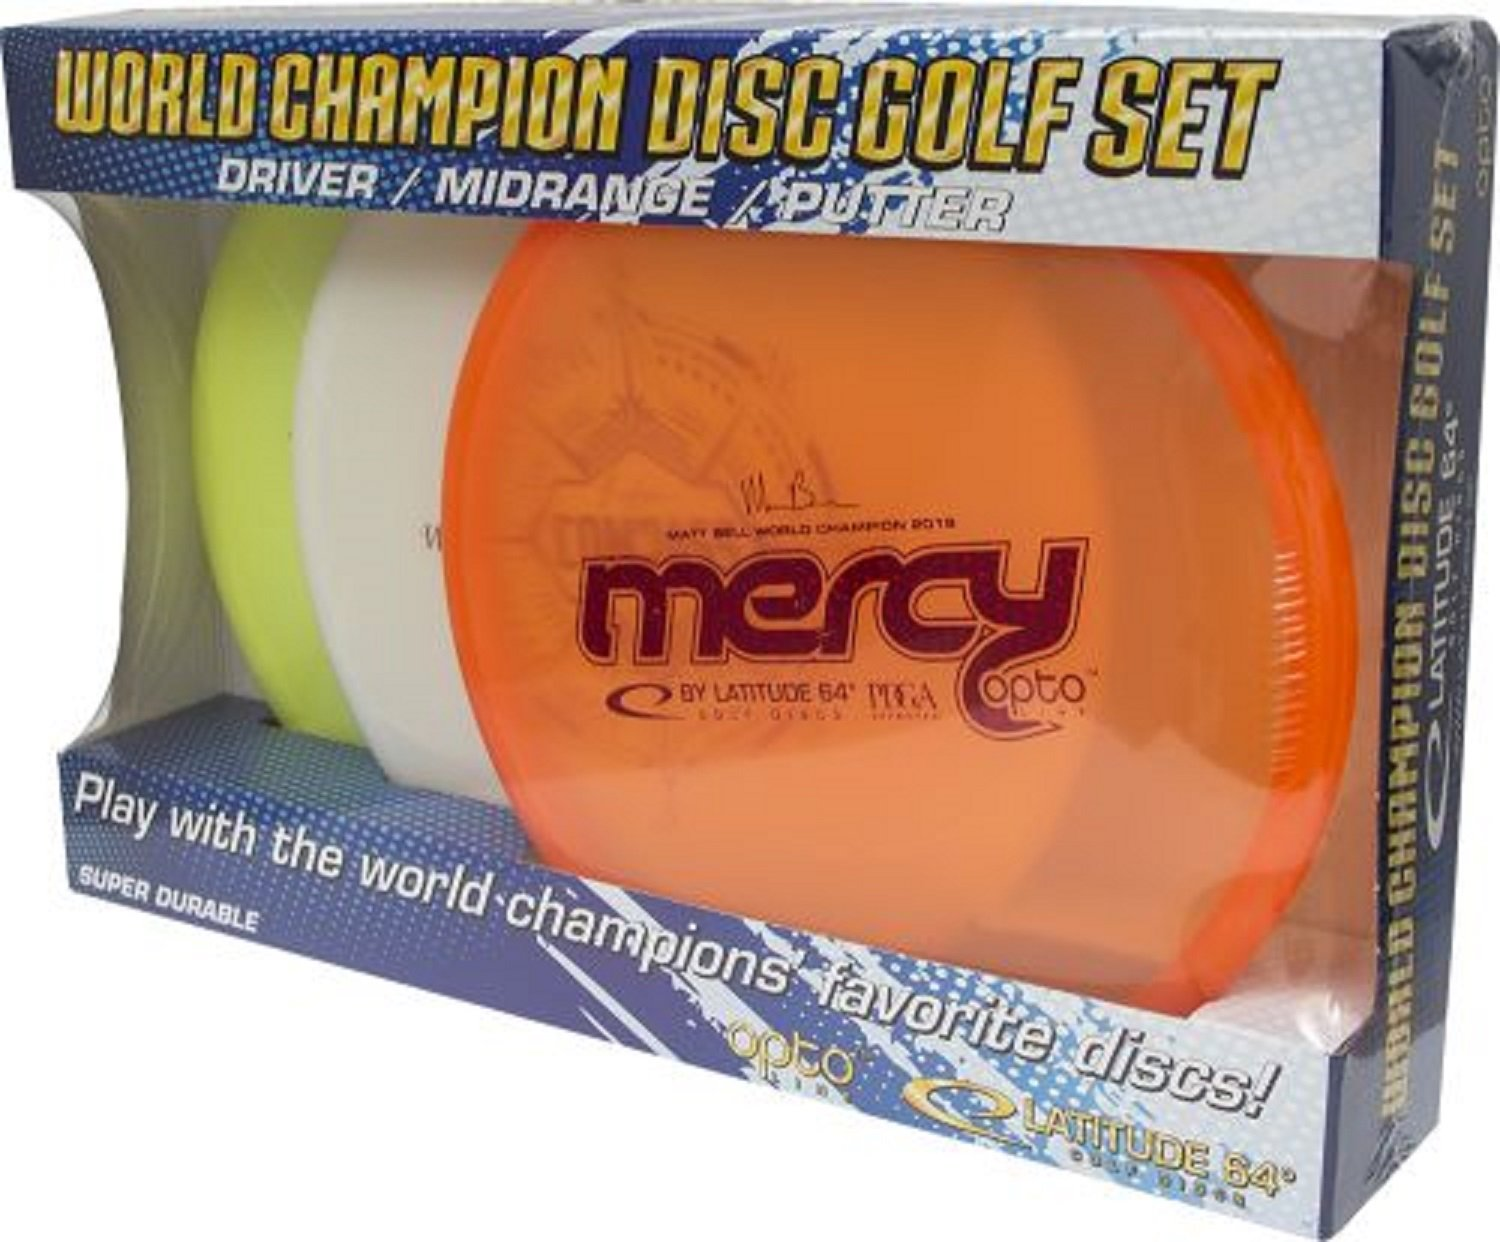 Latitude 64 Opto Line 3 Sheets Putter Midrange Driver – World Champion Disc Golf Set